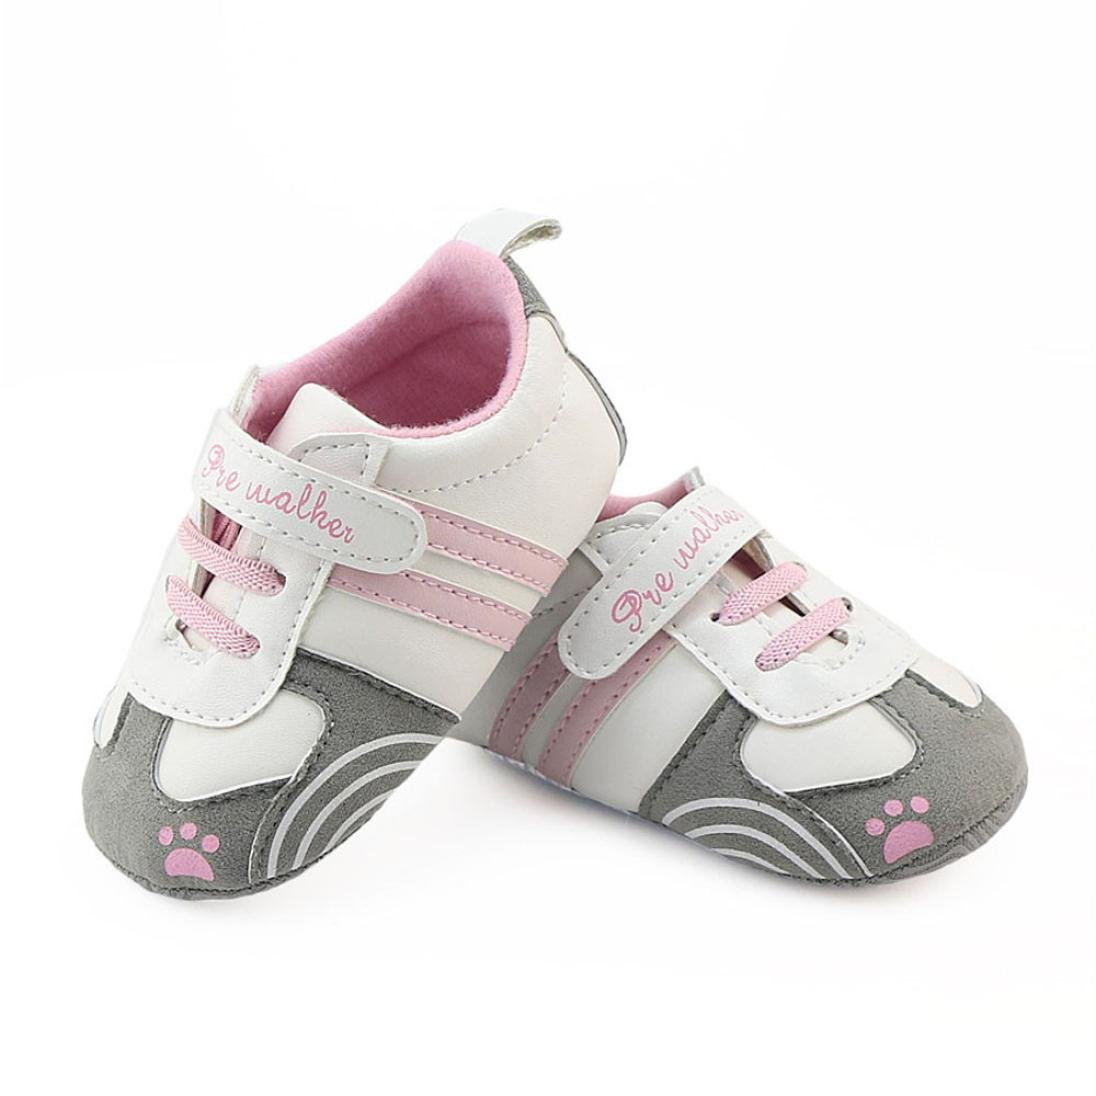 162d10265d2 Baby Sneakers Girls,Amiley Infant Toddler Baby Girls Boys Letter Outdoor  Lightweight Soft Sole Shoes Prewalker Causal Crib Sneakers Shoes (Pink